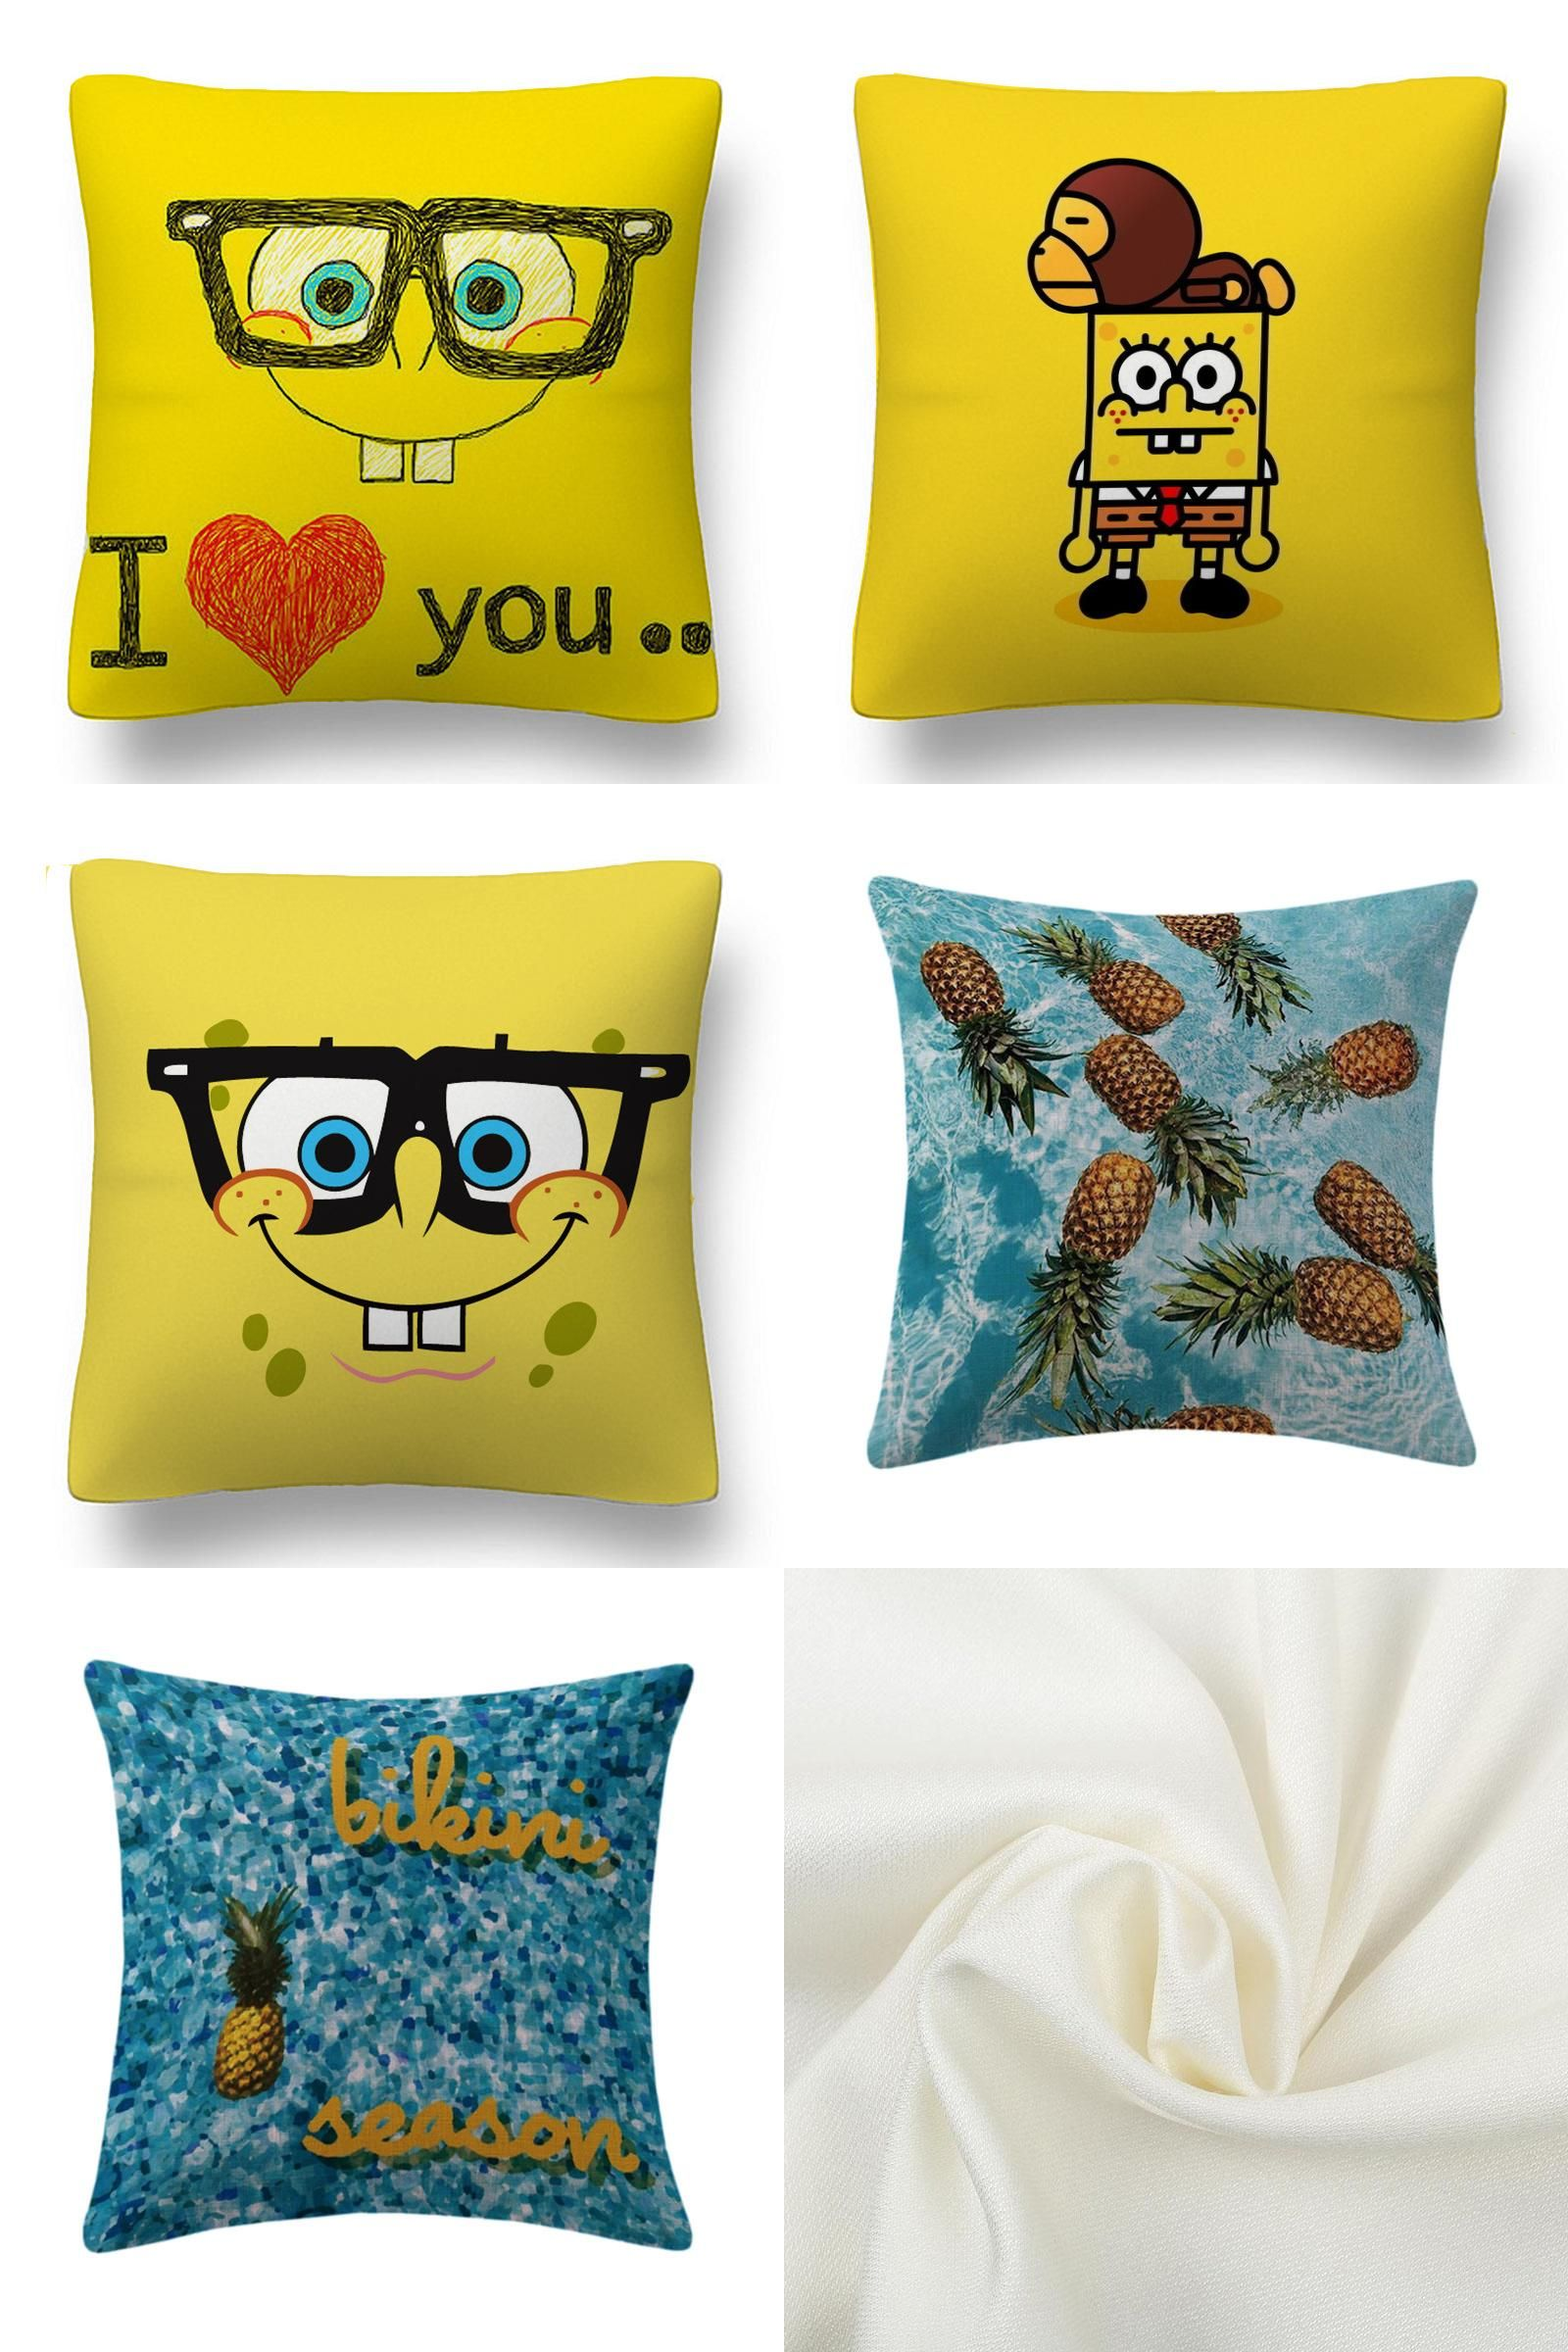 [Visit To Buy] Maiyubo Cold Fabric Polyester Pillow Cover Spongebob